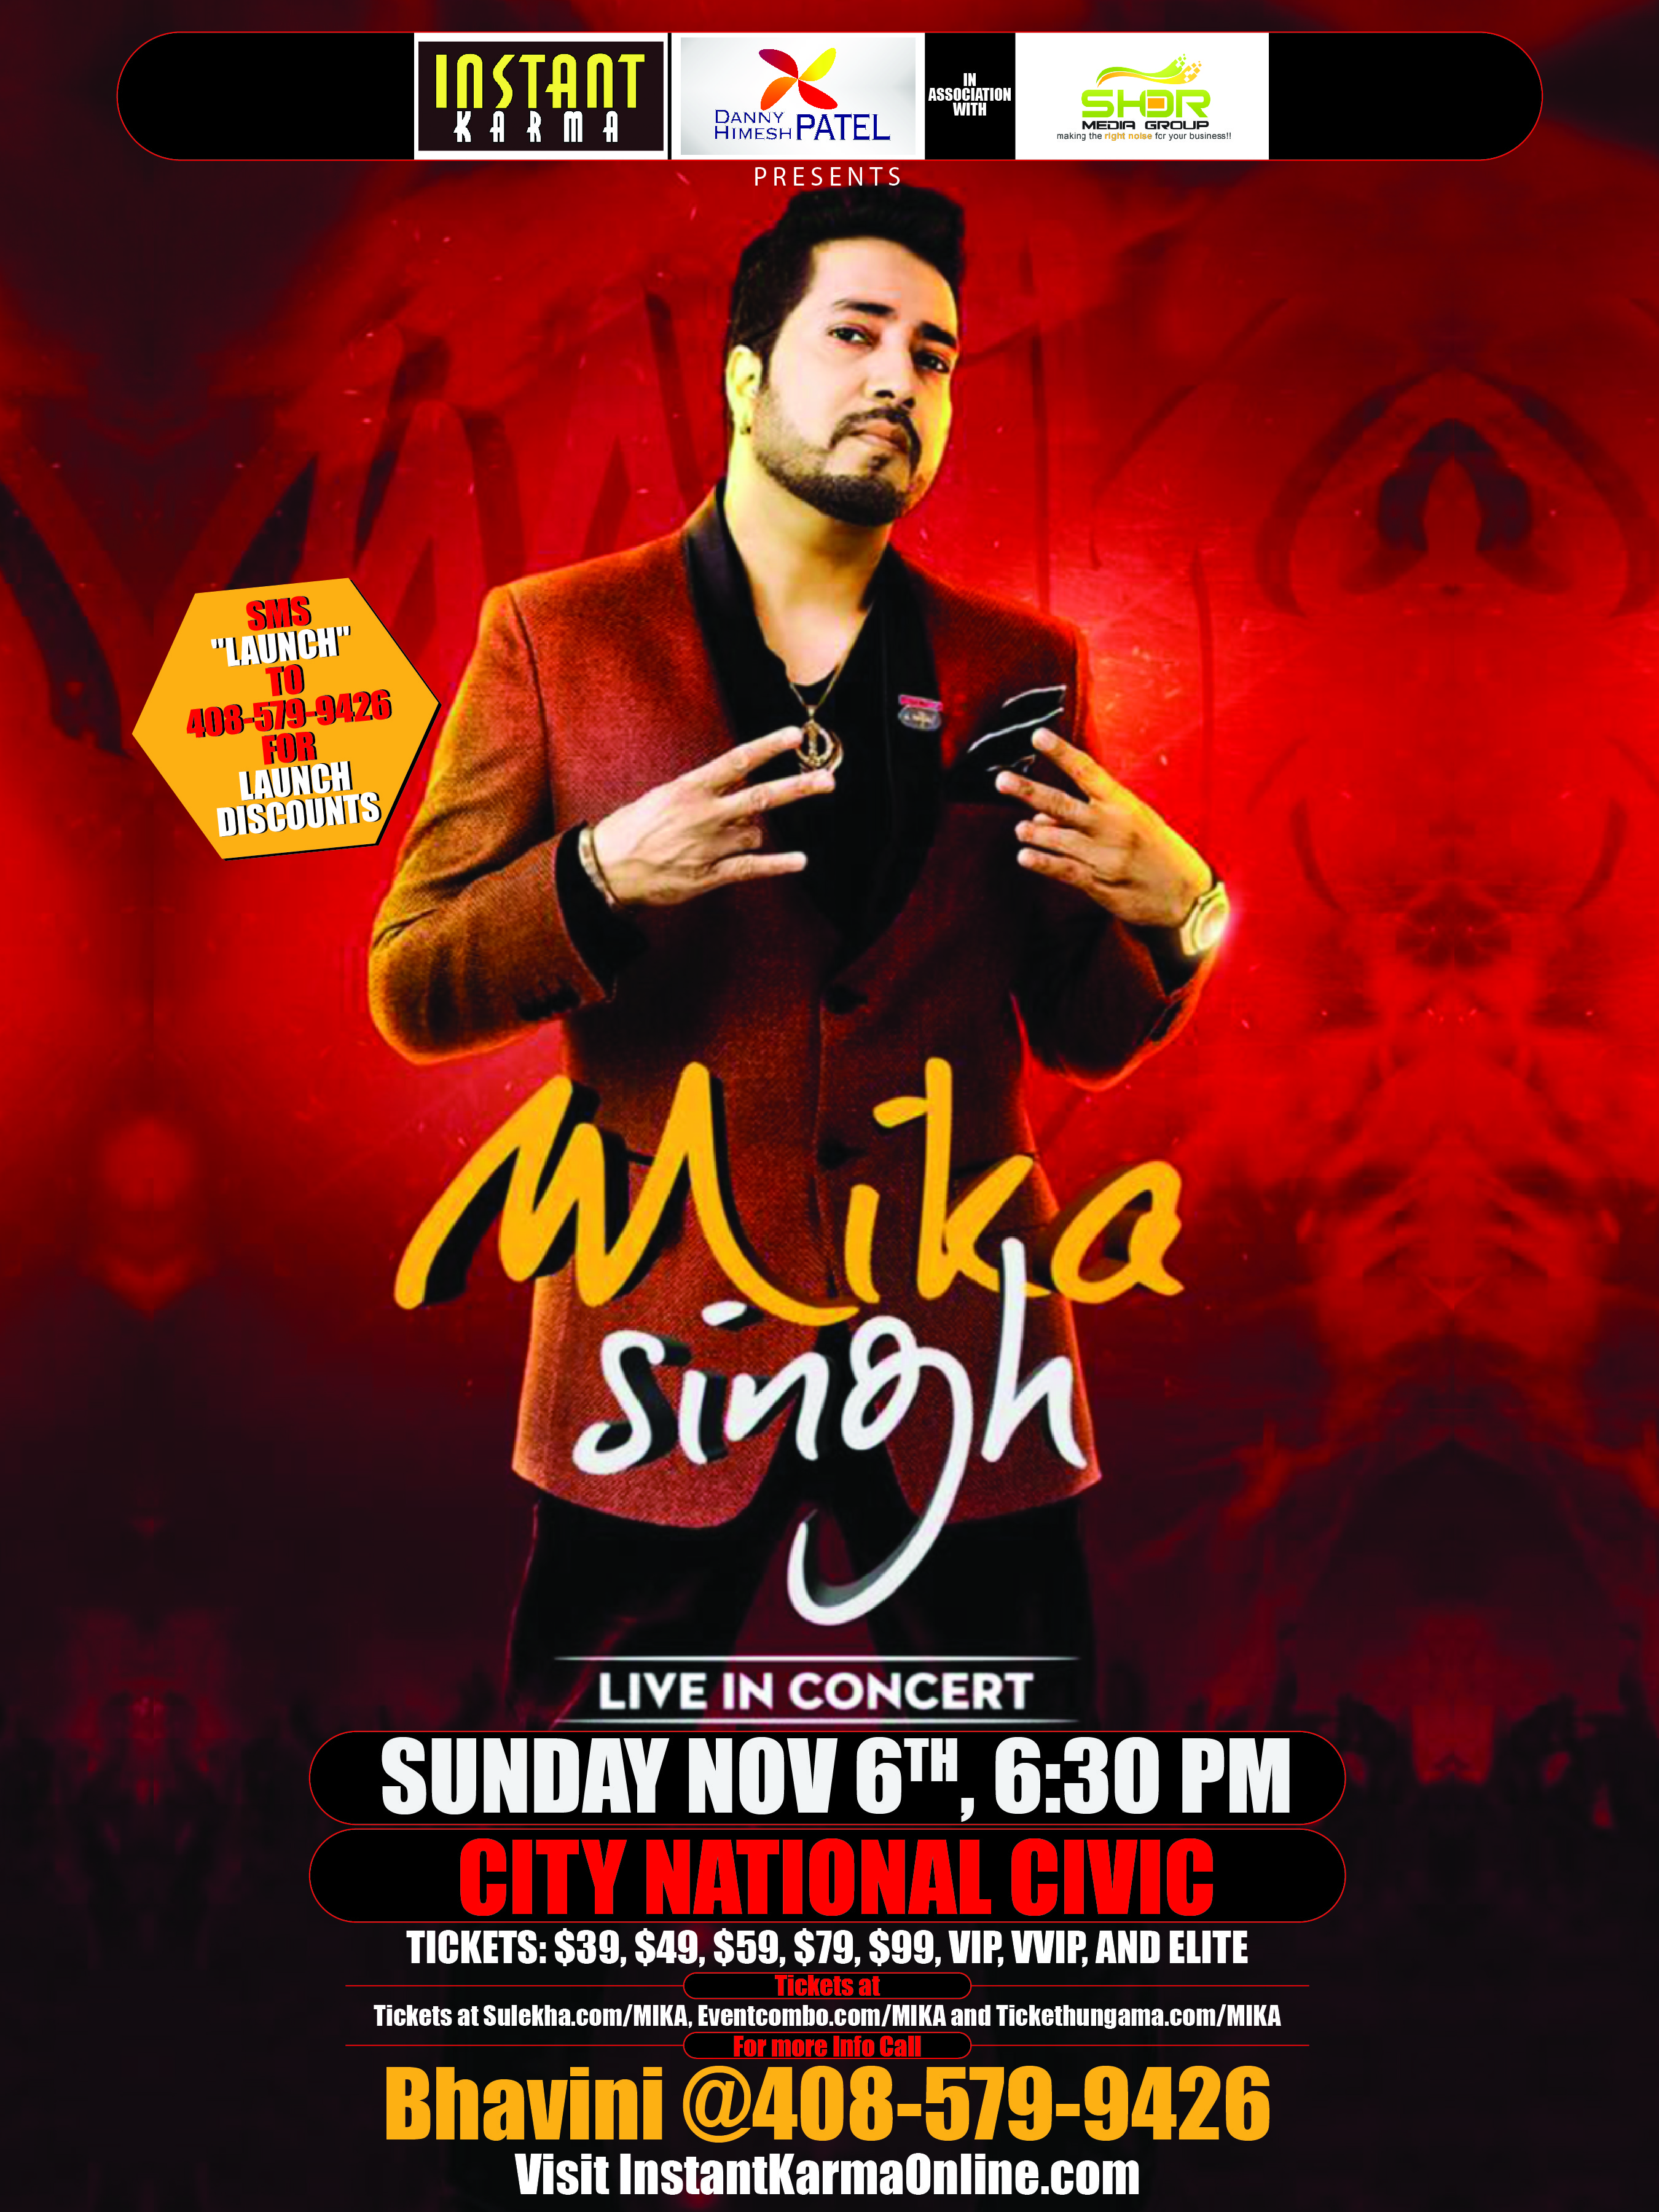 Mika Singh LIVE in Concert in San Jose